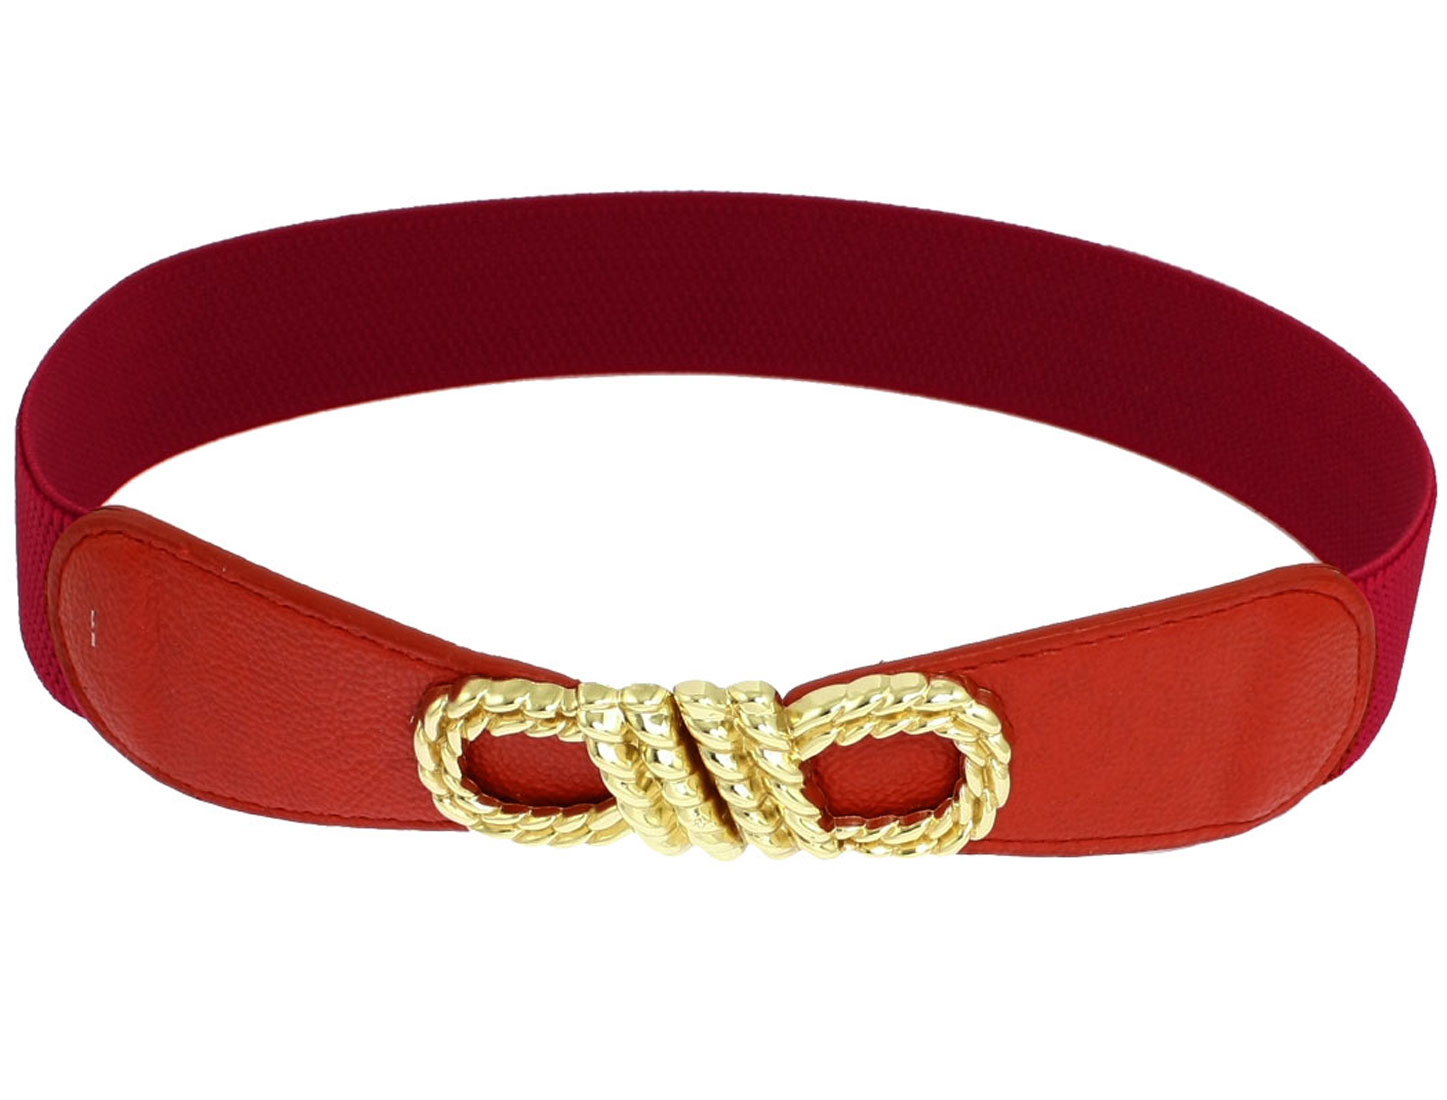 Women Knot Design Metal Buckle Stretch Belt Waistband Cinch Dark Red